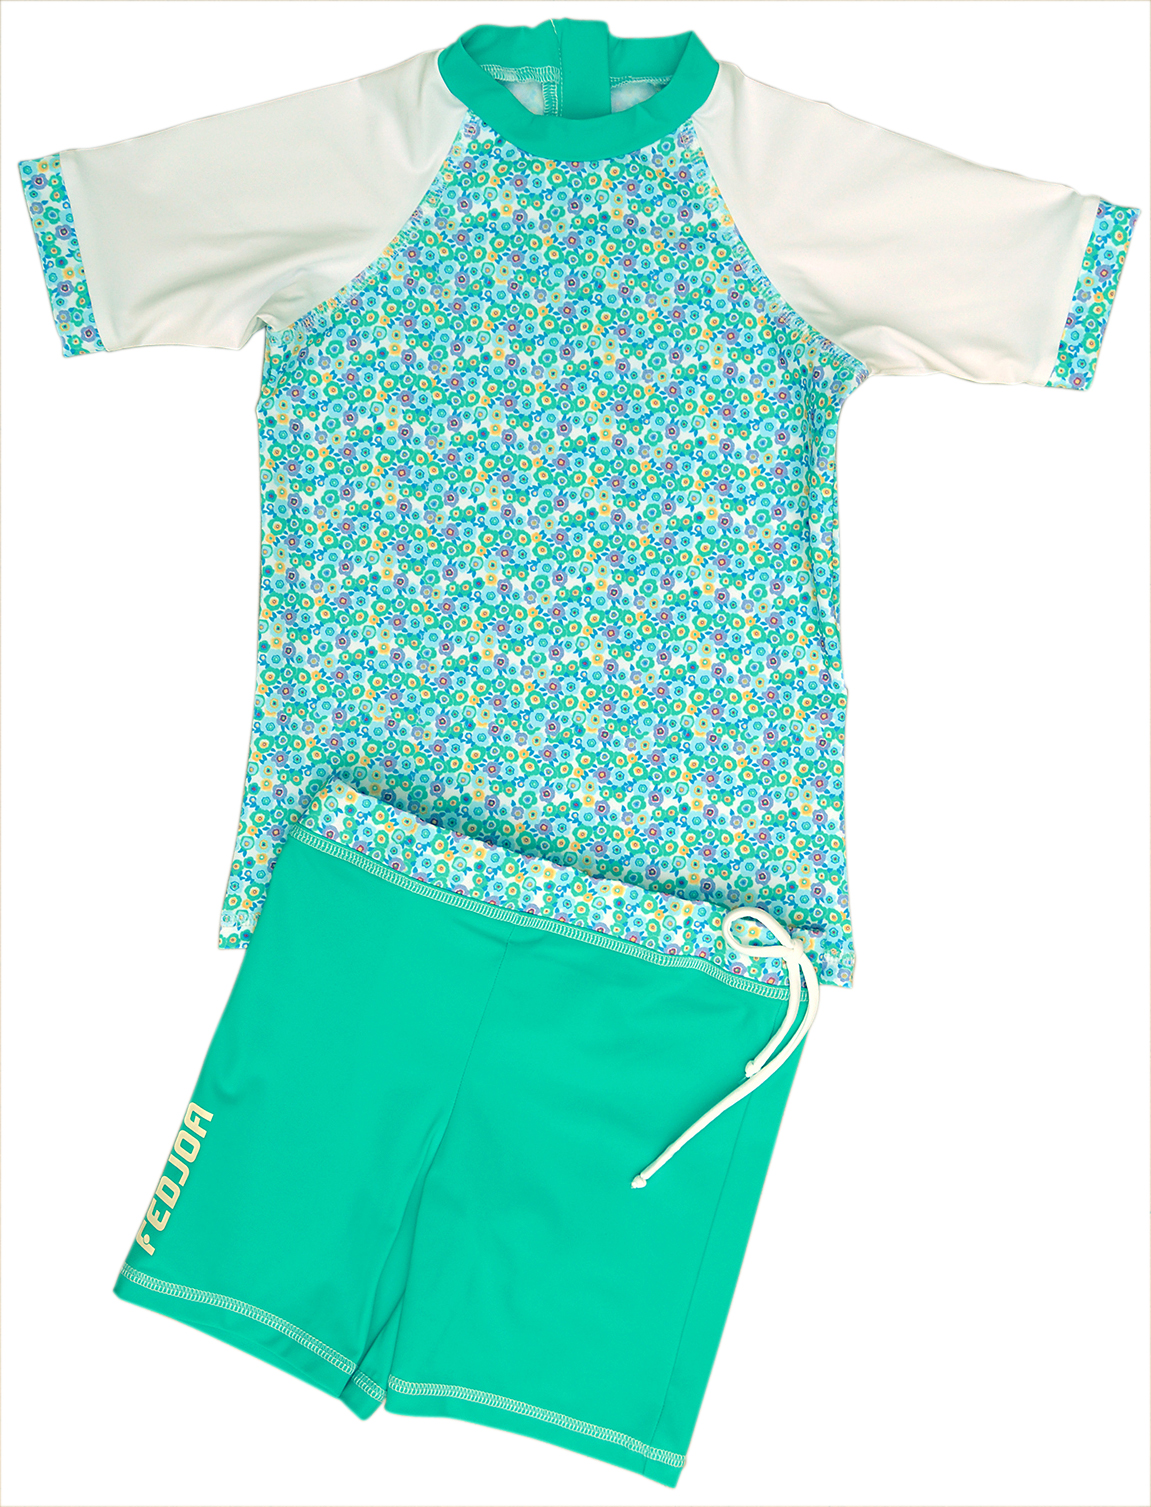 2d44b985af UV T-shirt, UV Shorts, UV Sun Protection Combo Swim Set- for babies and  kids LOLA